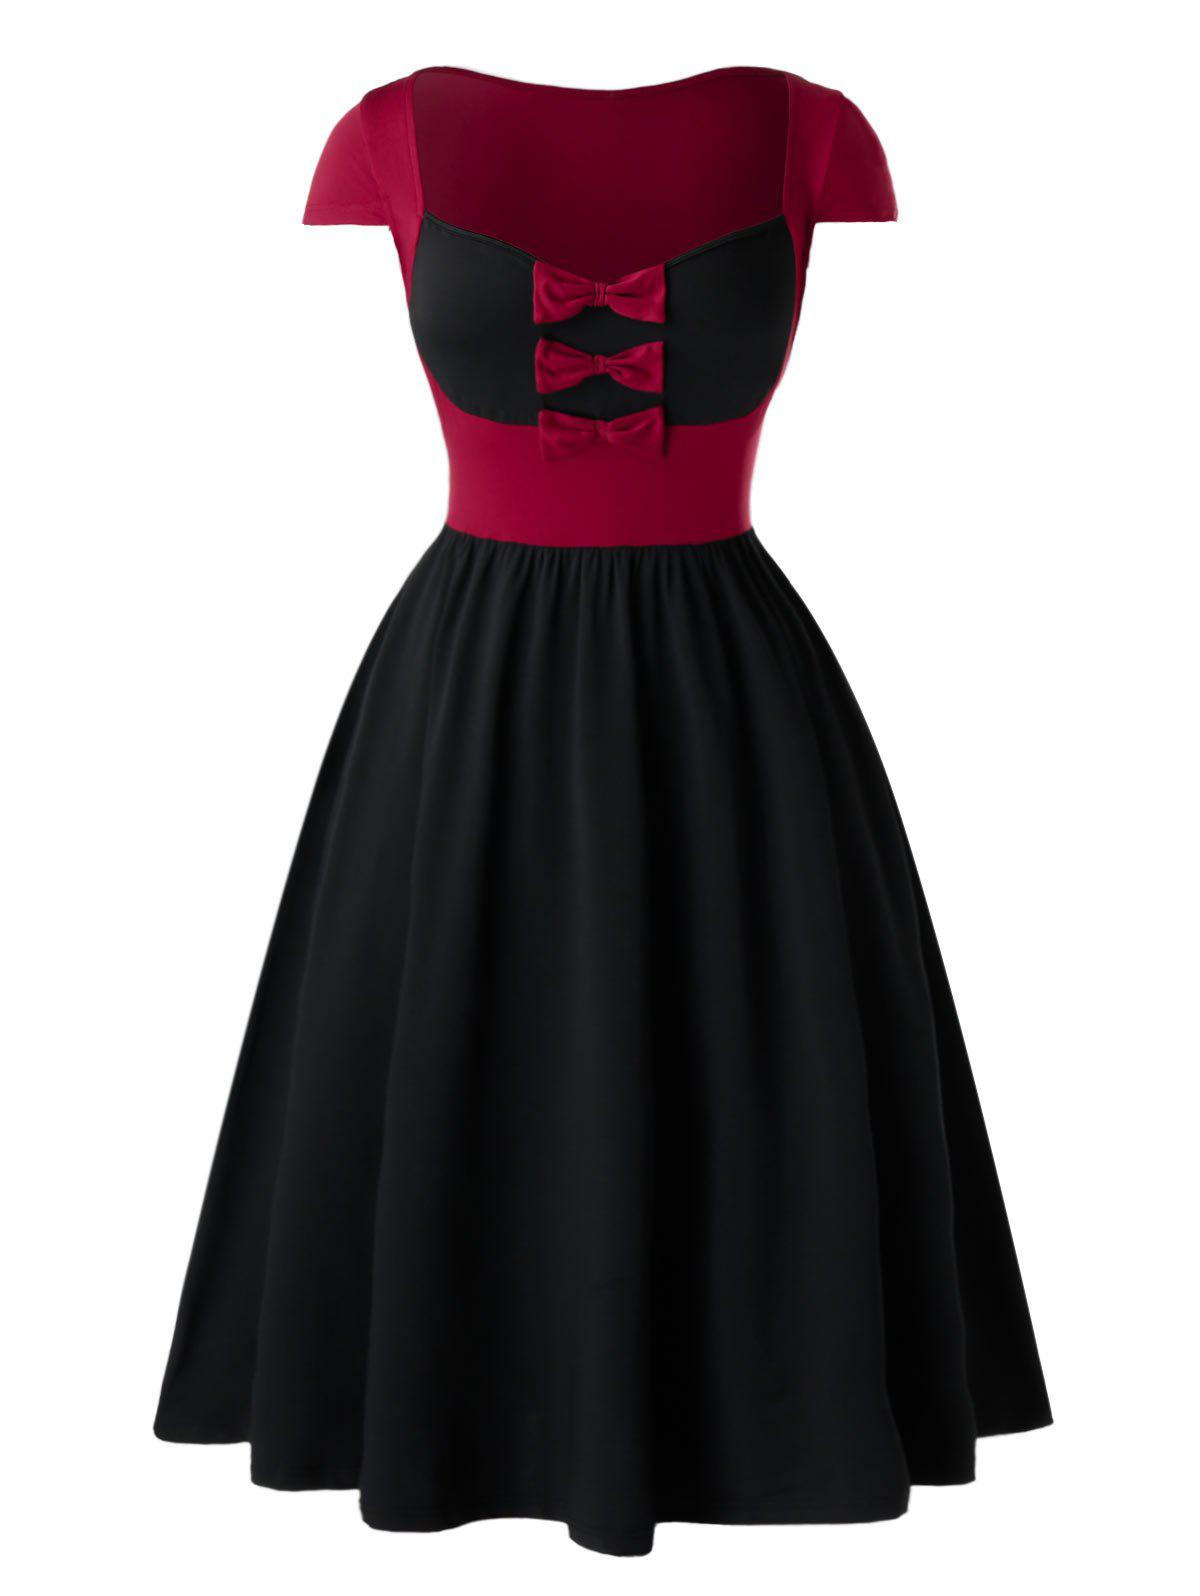 Plus Size Two Tone Bowknot Cap Sleeve Retro Dress - BLACK 2X